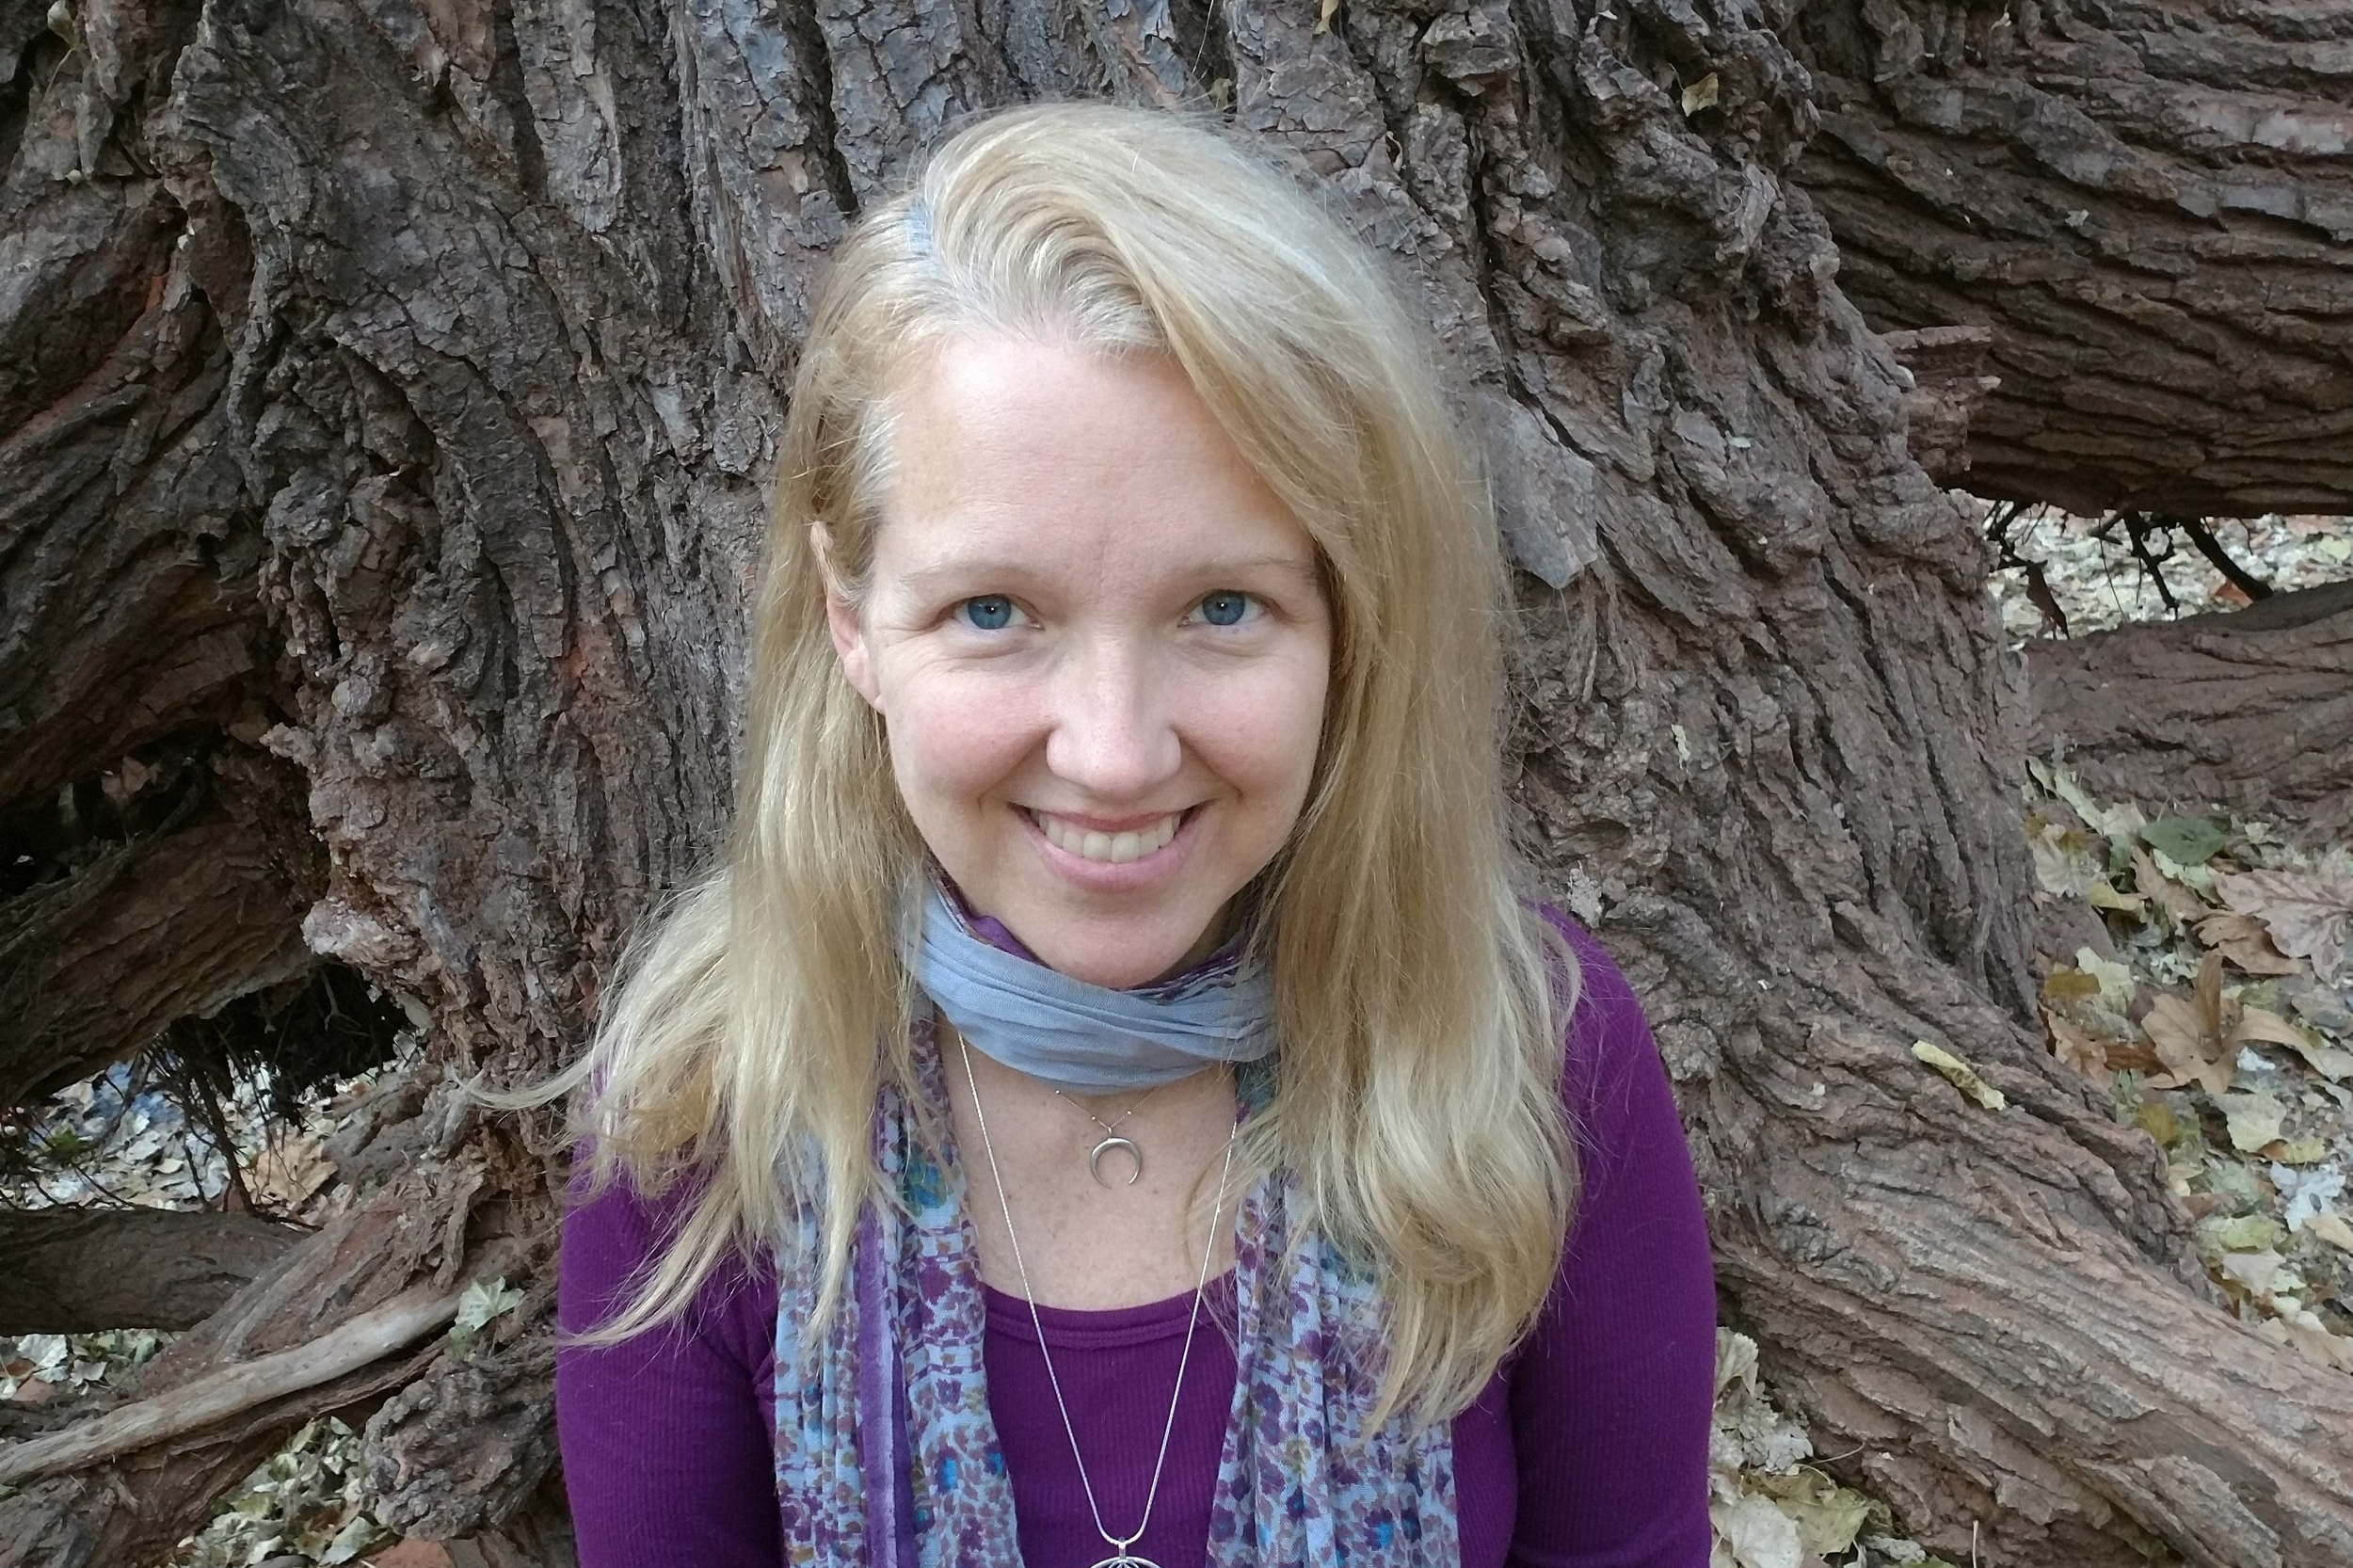 Kara Earls - With a successful healing practice for the last 18 years, Kara Earls is a powerful healer, spiritual guide and teacher. Kara is a Certified Hypnotherapist and has an extensive background in Shamanic healing, energy medicine, regression therapy, holistic health and transpersonal and Buddhist psychology. She specializes in assisting her clients in transforming trauma, anxiety, depression, addiction and low self-worth into self-empowerment. She is the creatrix of The ReMothering Process, an eight step process designed to heal the mother wound.